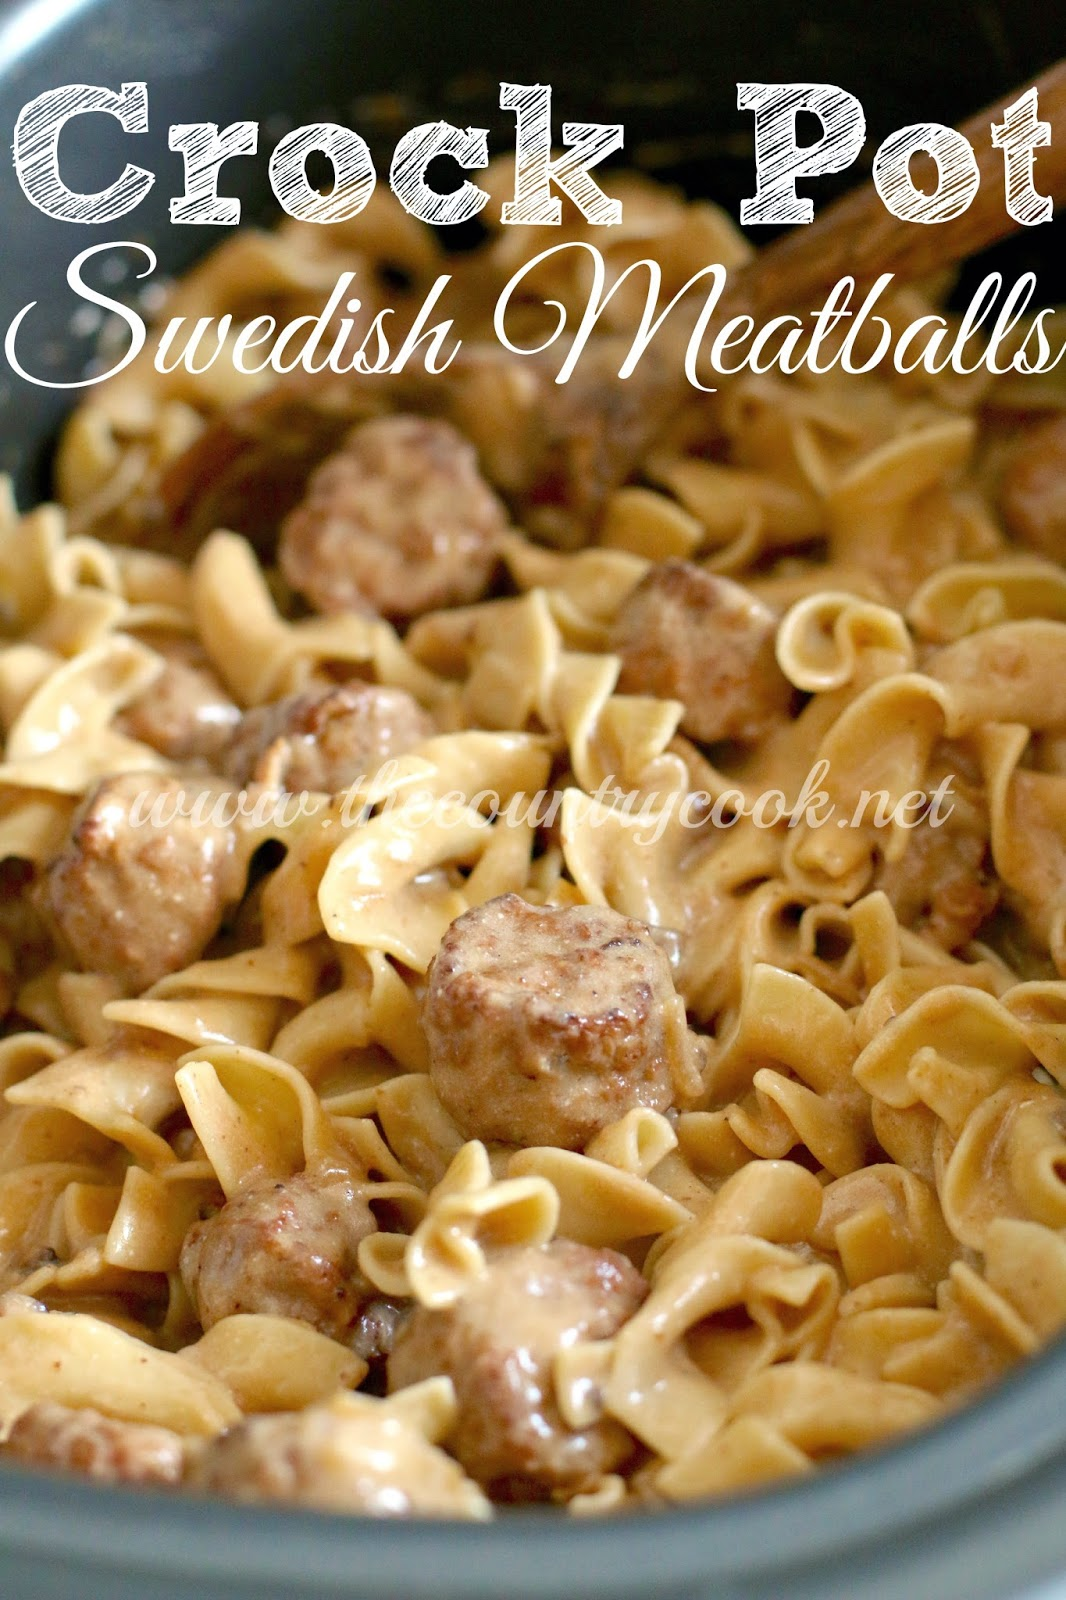 Swedish Meatballs Crockpot The country cook: crock pot swedish ...